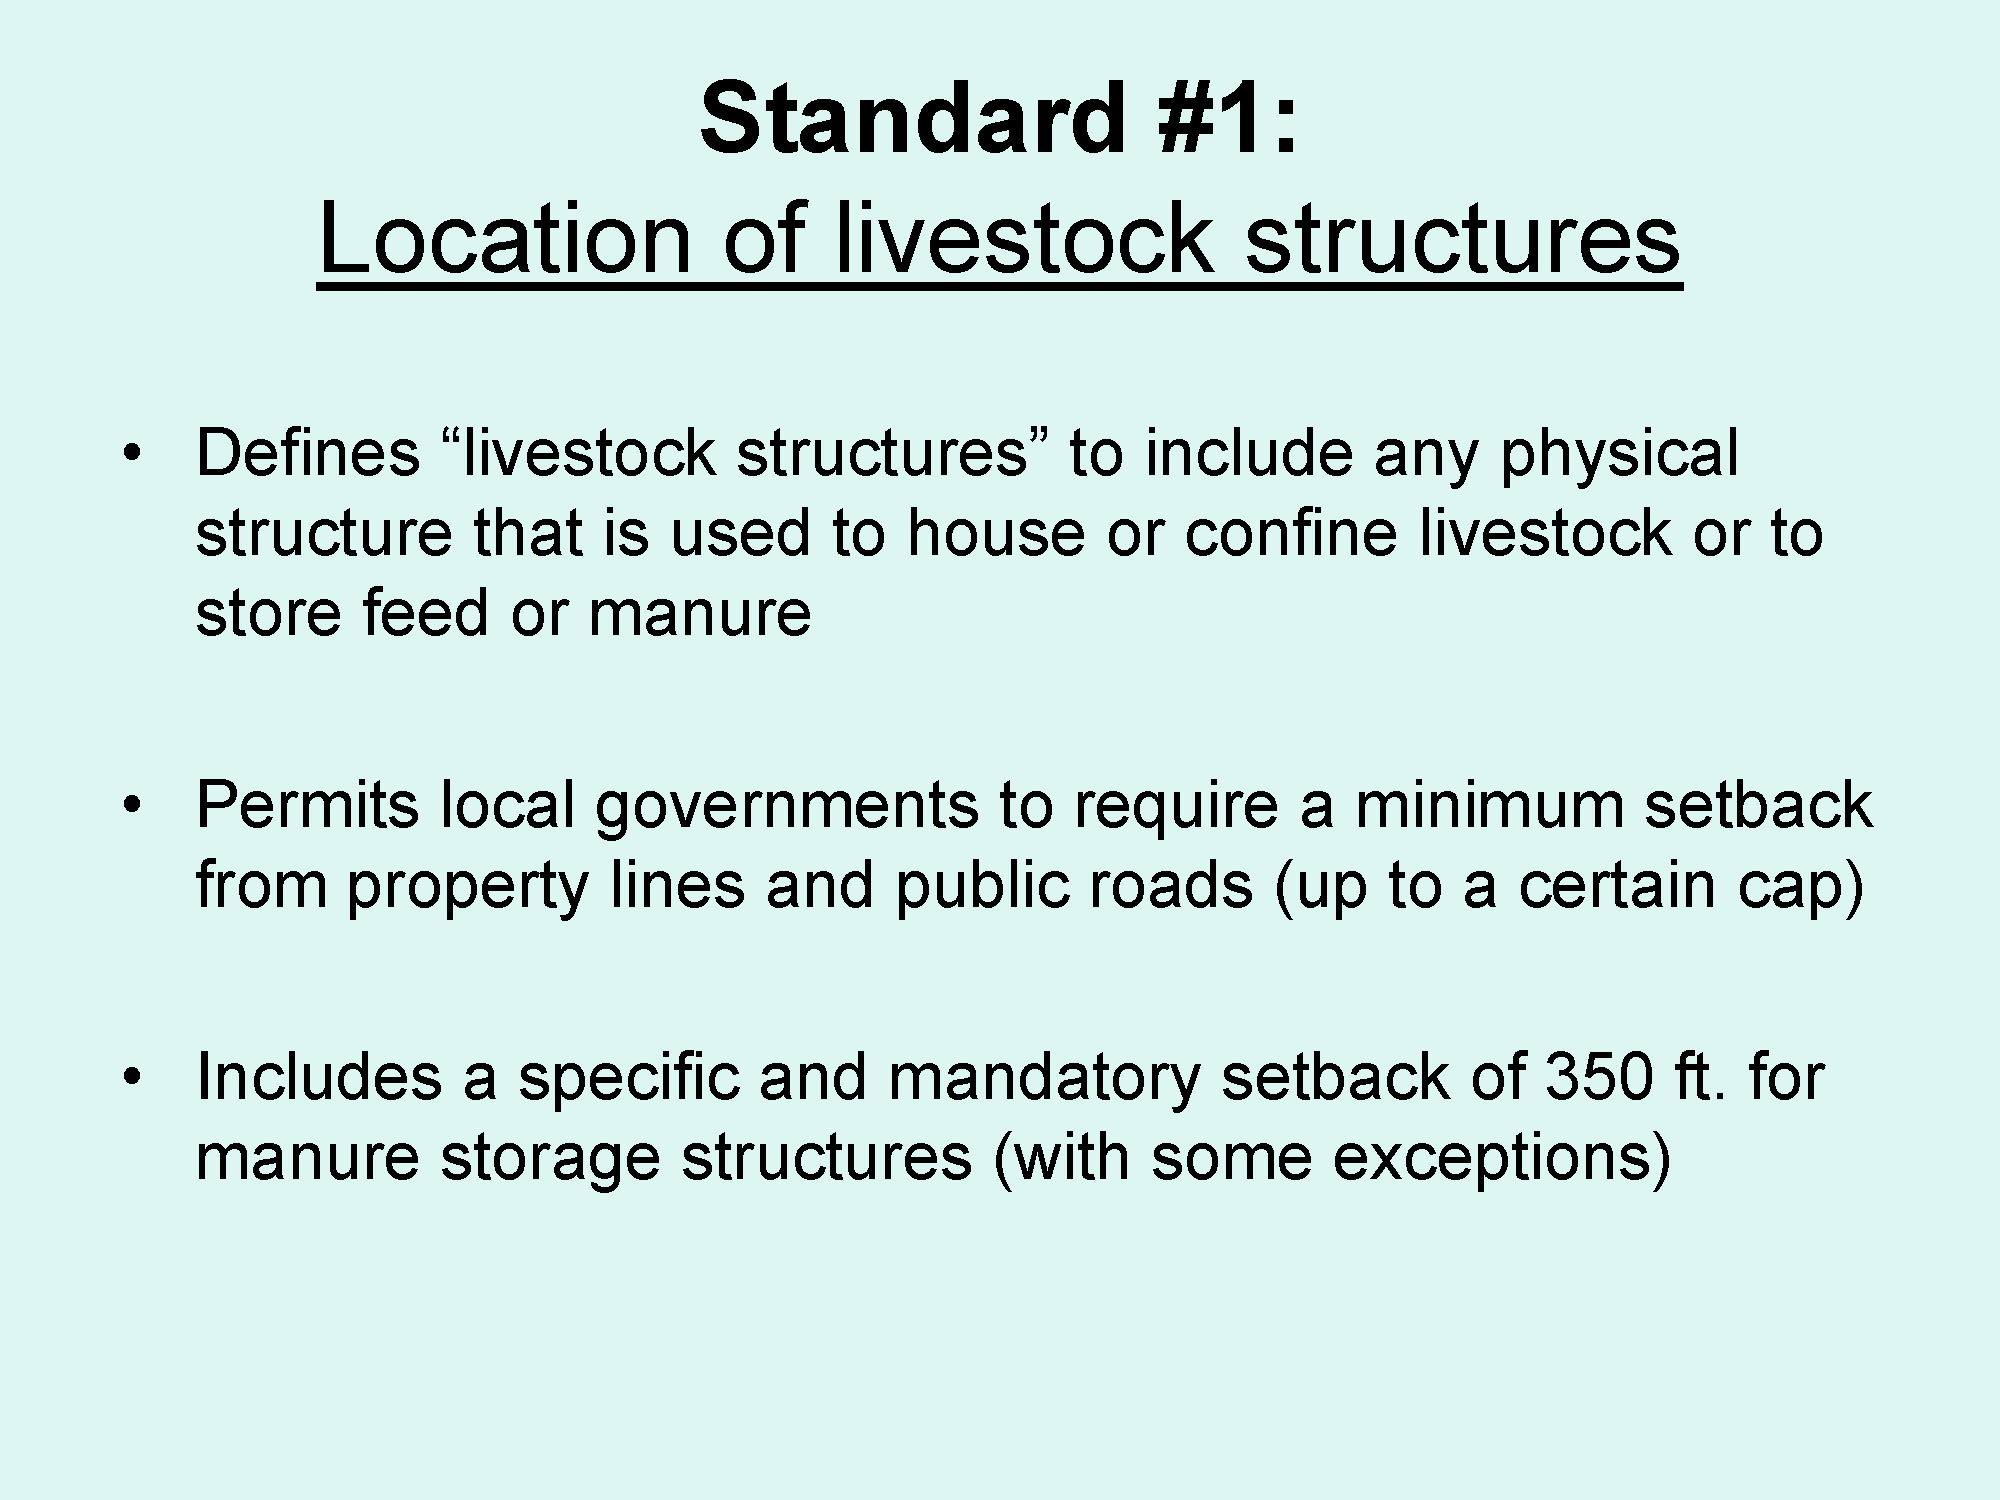 An_Overview_of_the_Livestock_Siting_Law_Page_13.png